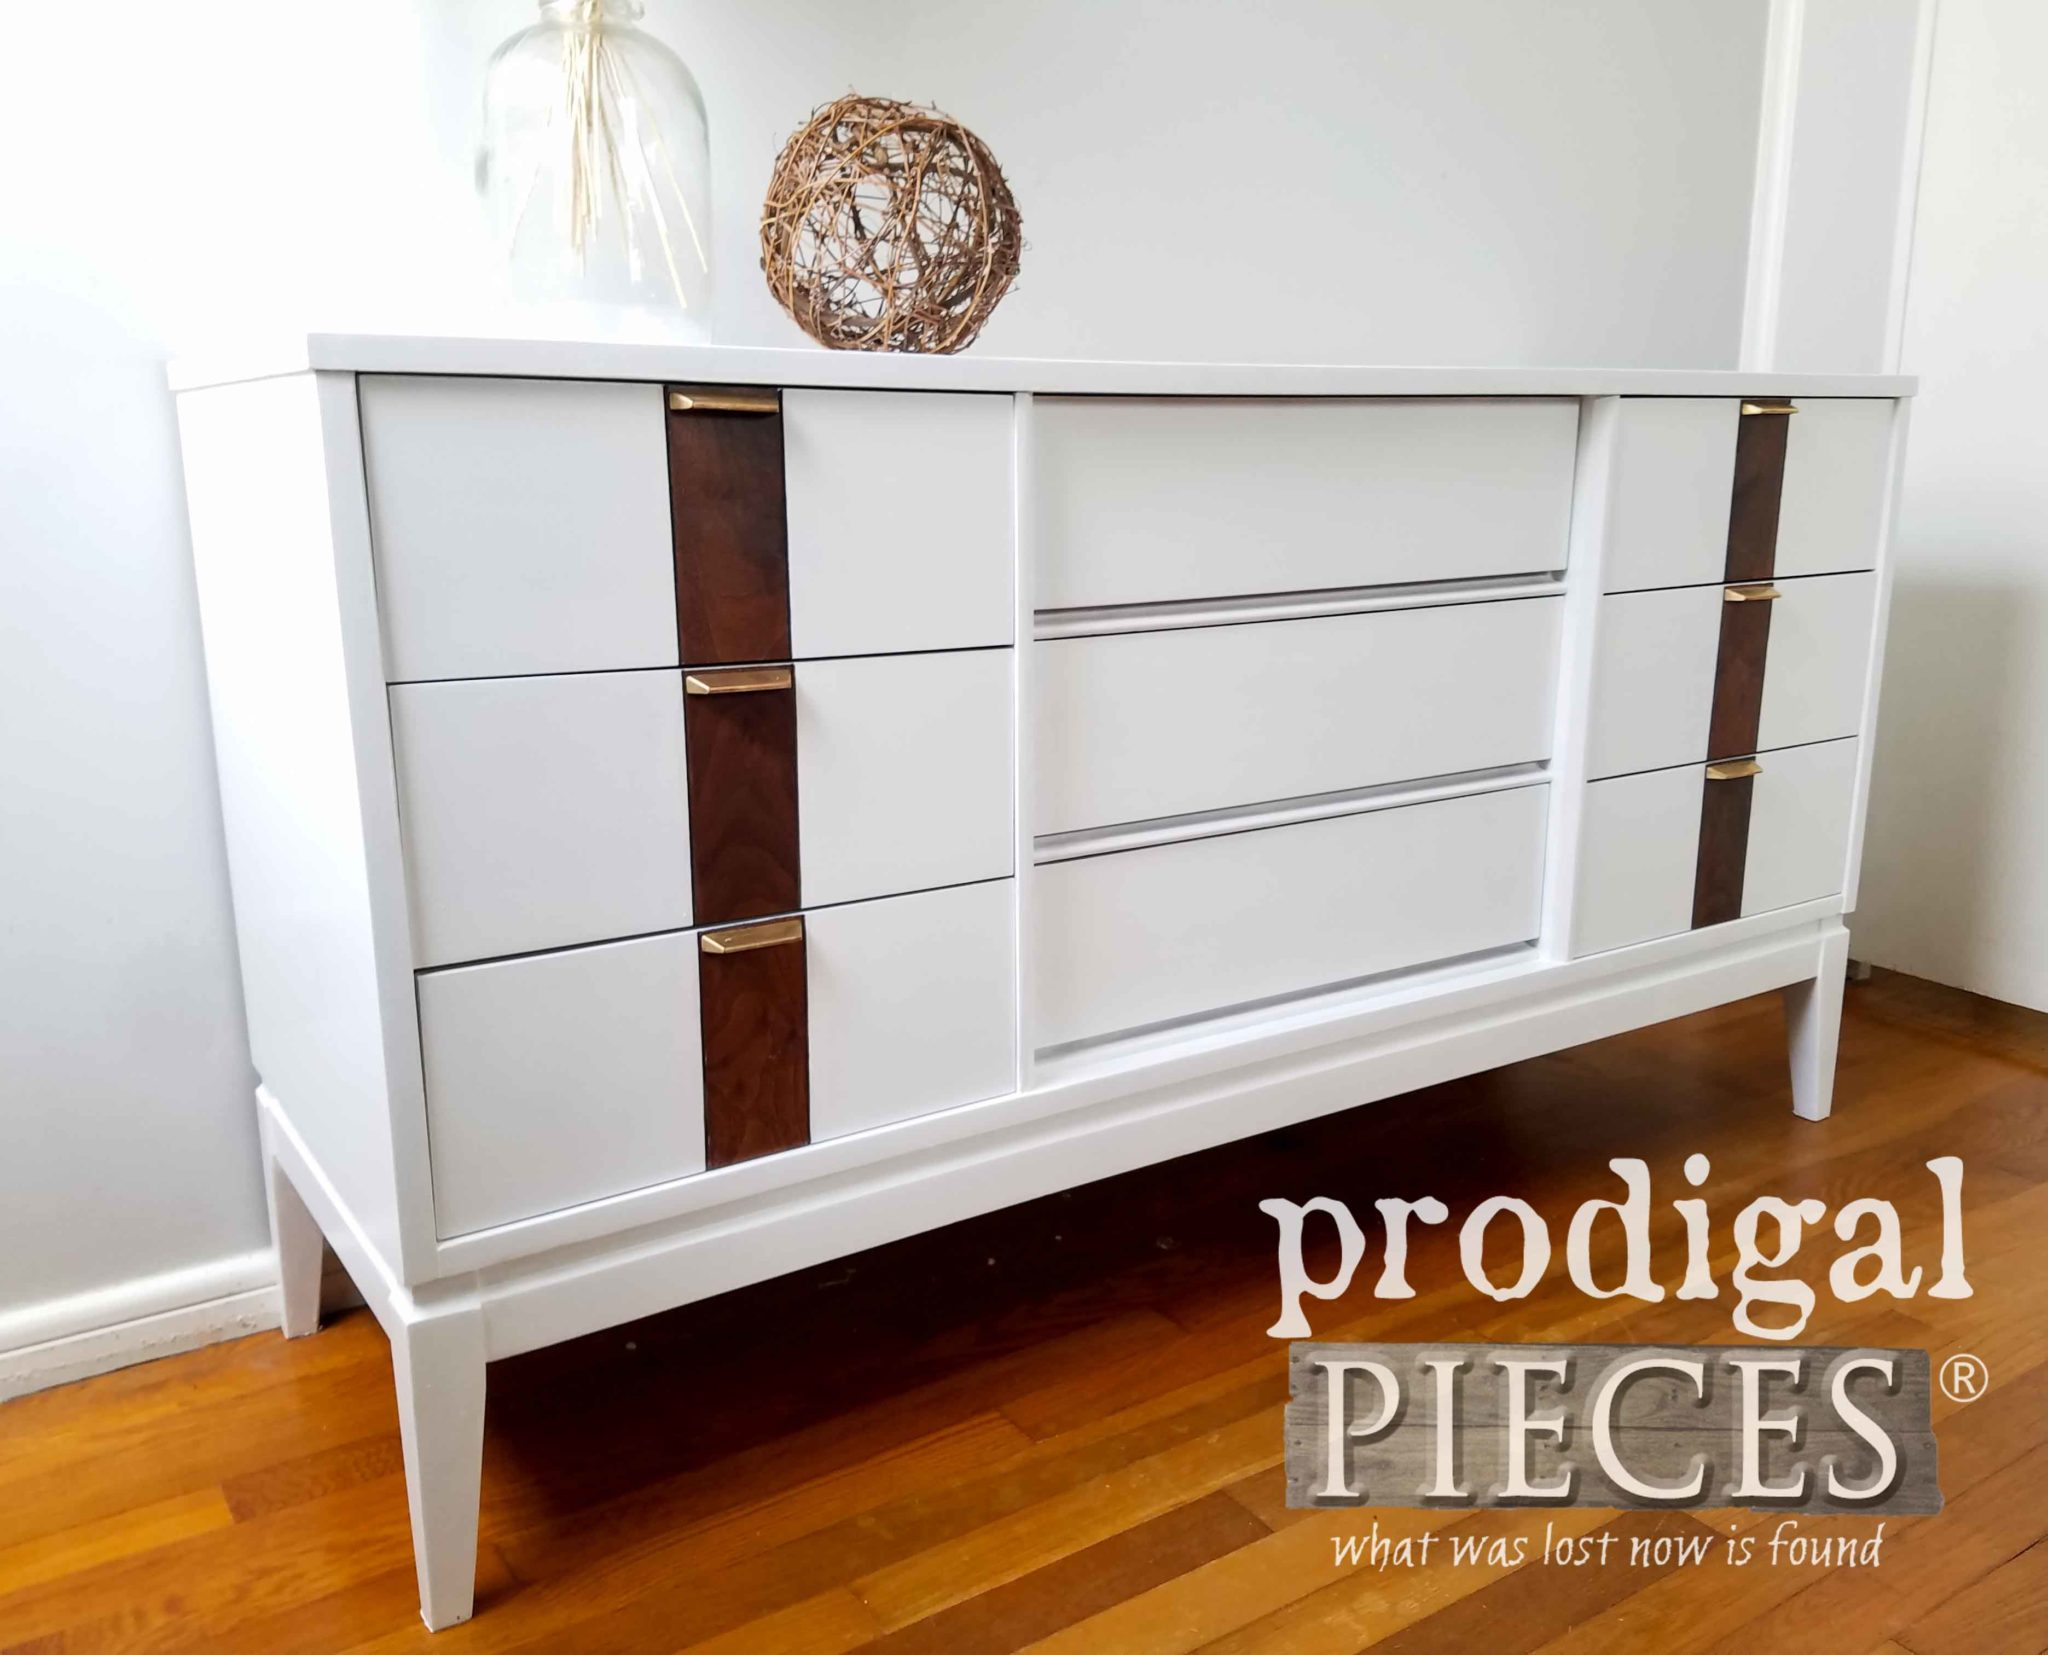 Mid Century Modern Furniture can look so good with a fresh update. See details at prodigalpieces.com